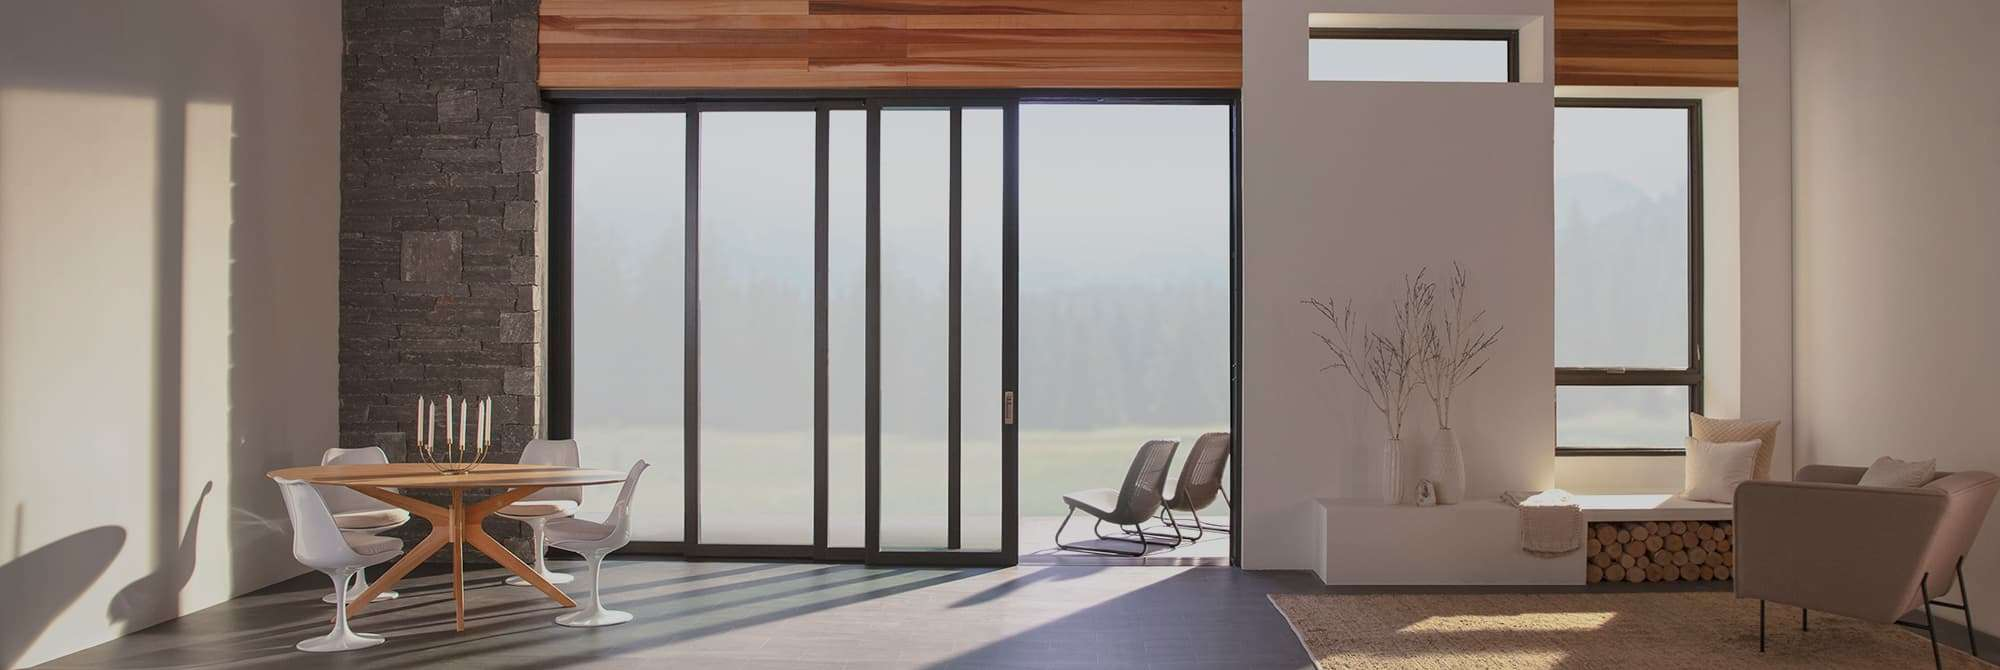 Large Sliding Glass Doors: The Design Trend to Consider This Construction Season